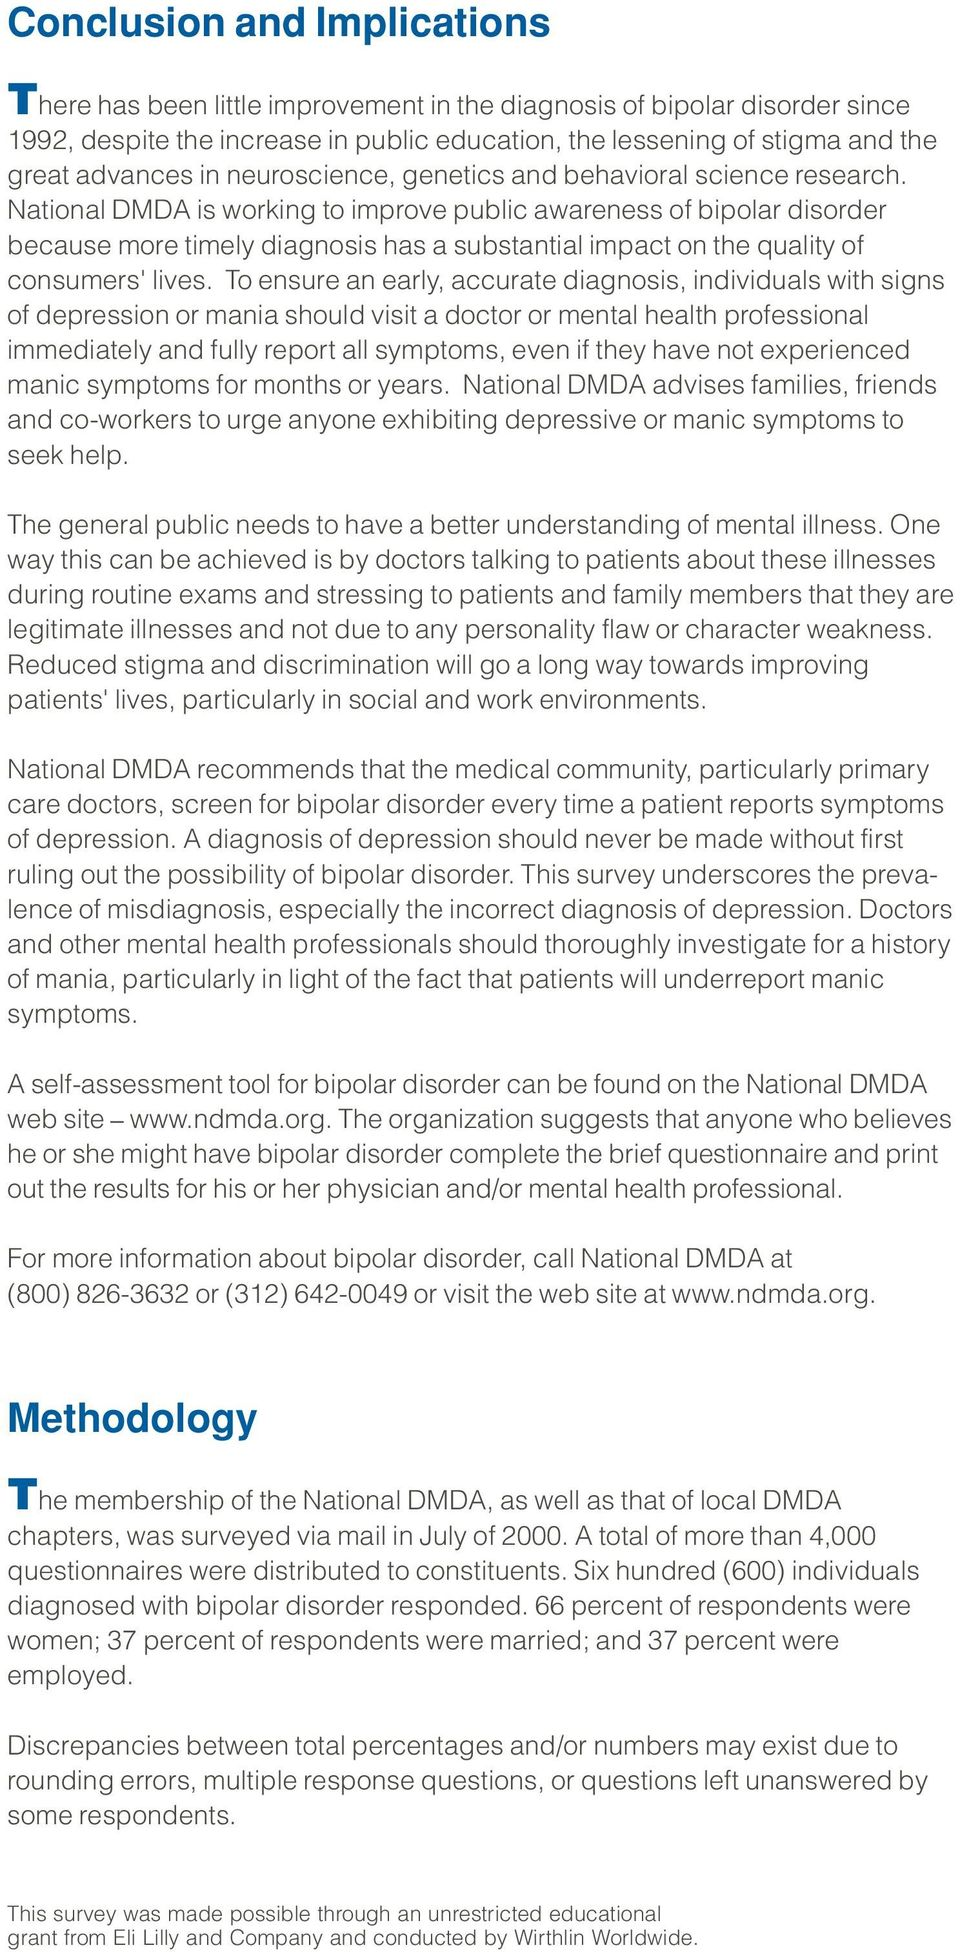 National DMDA is working to improve public awareness of bipolar disorder because more timely diagnosis has a substantial impact on the quality of consumers' lives.